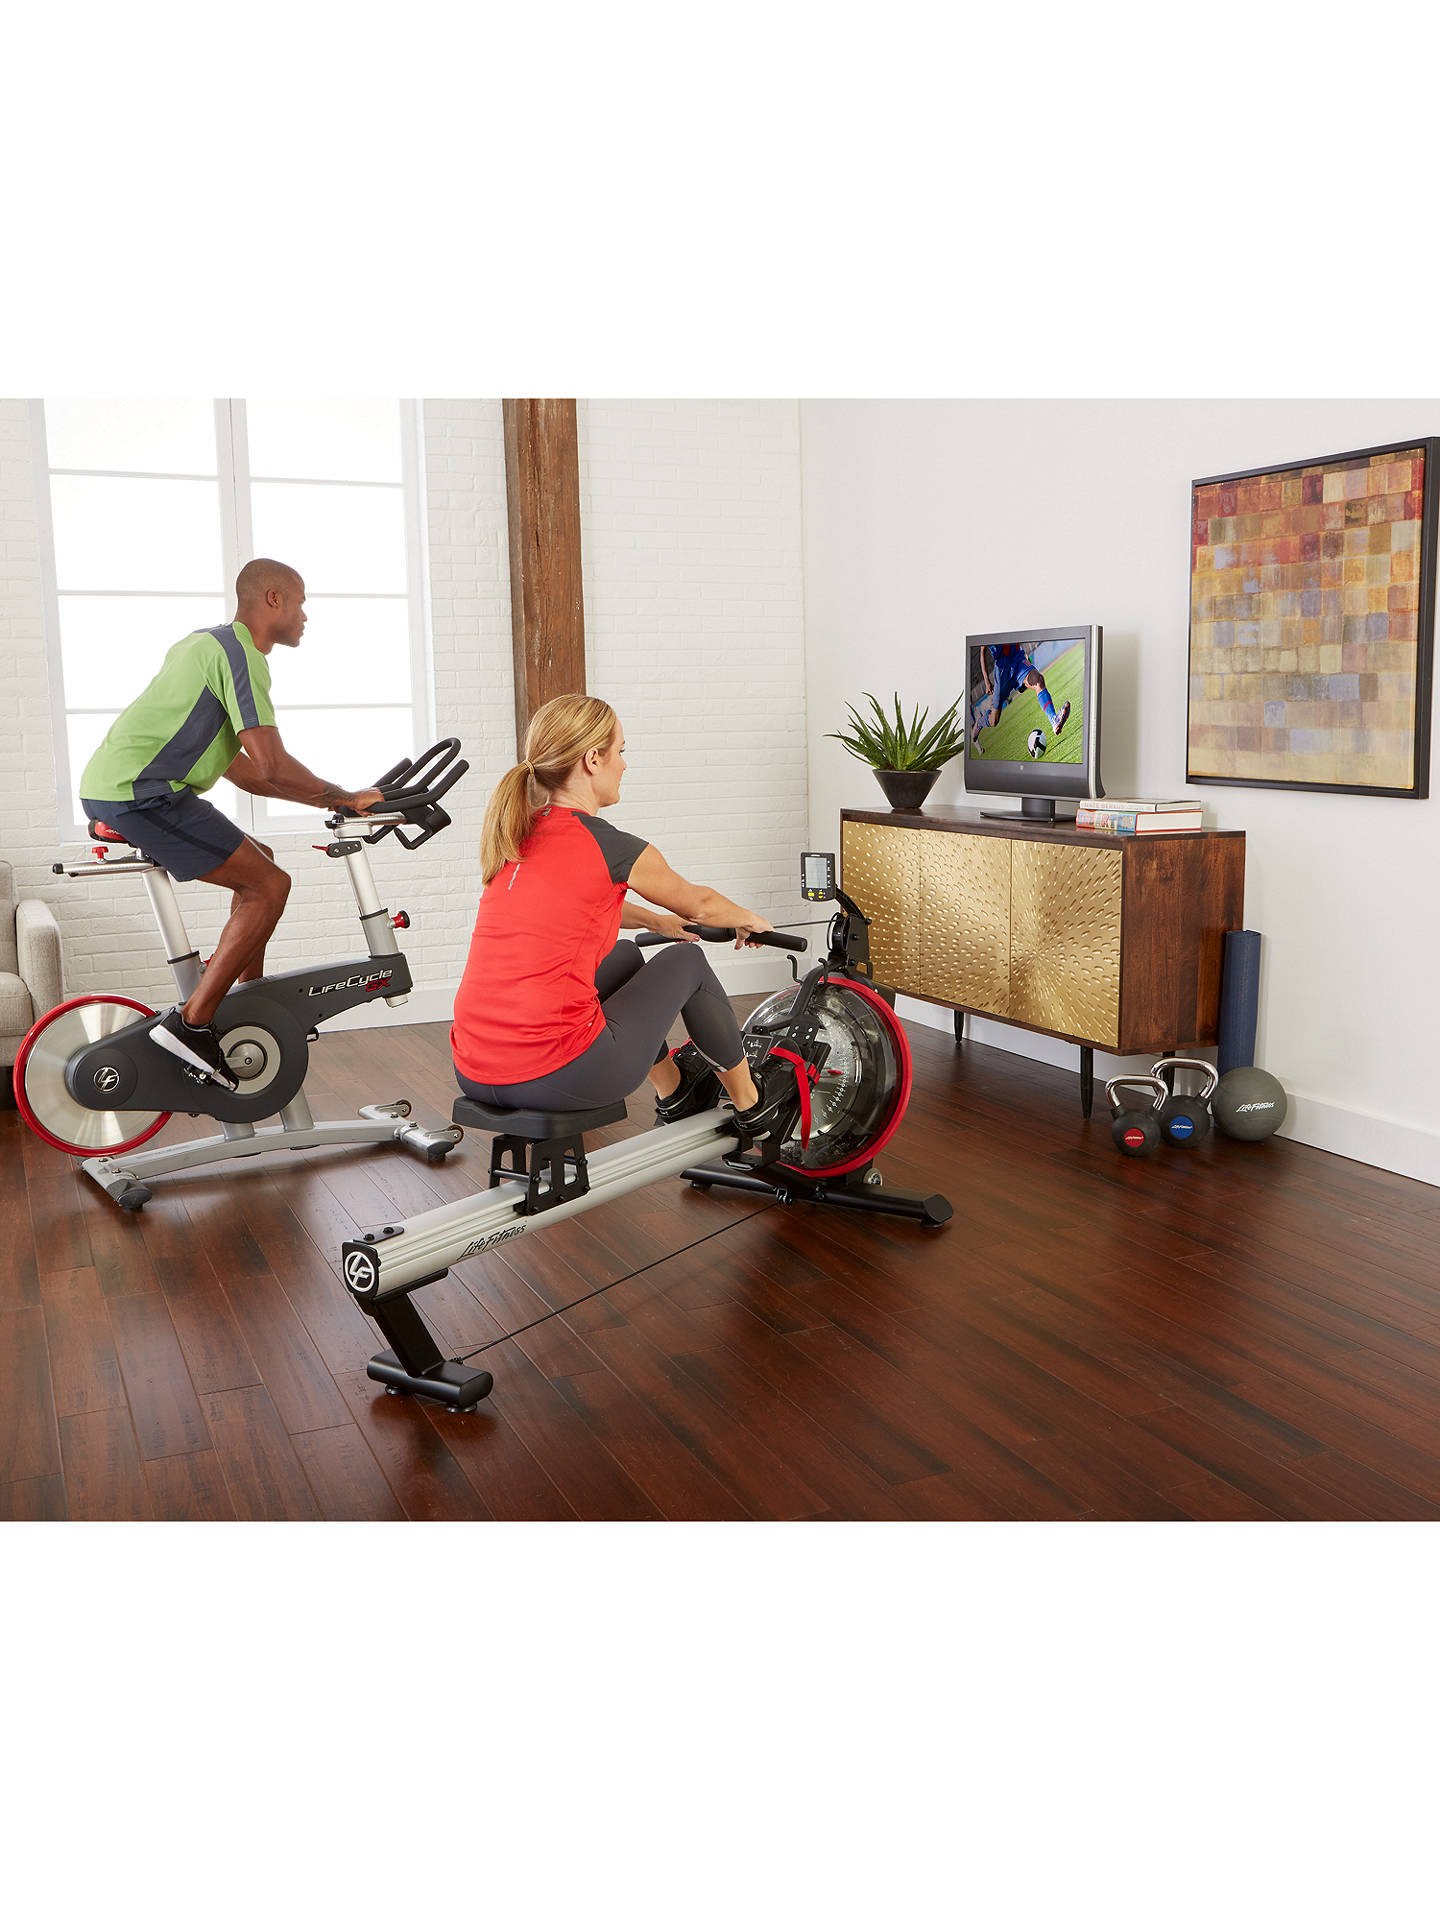 BuyLife Fitness Row GX Trainer, Silver/Black/Red Online at johnlewis.com